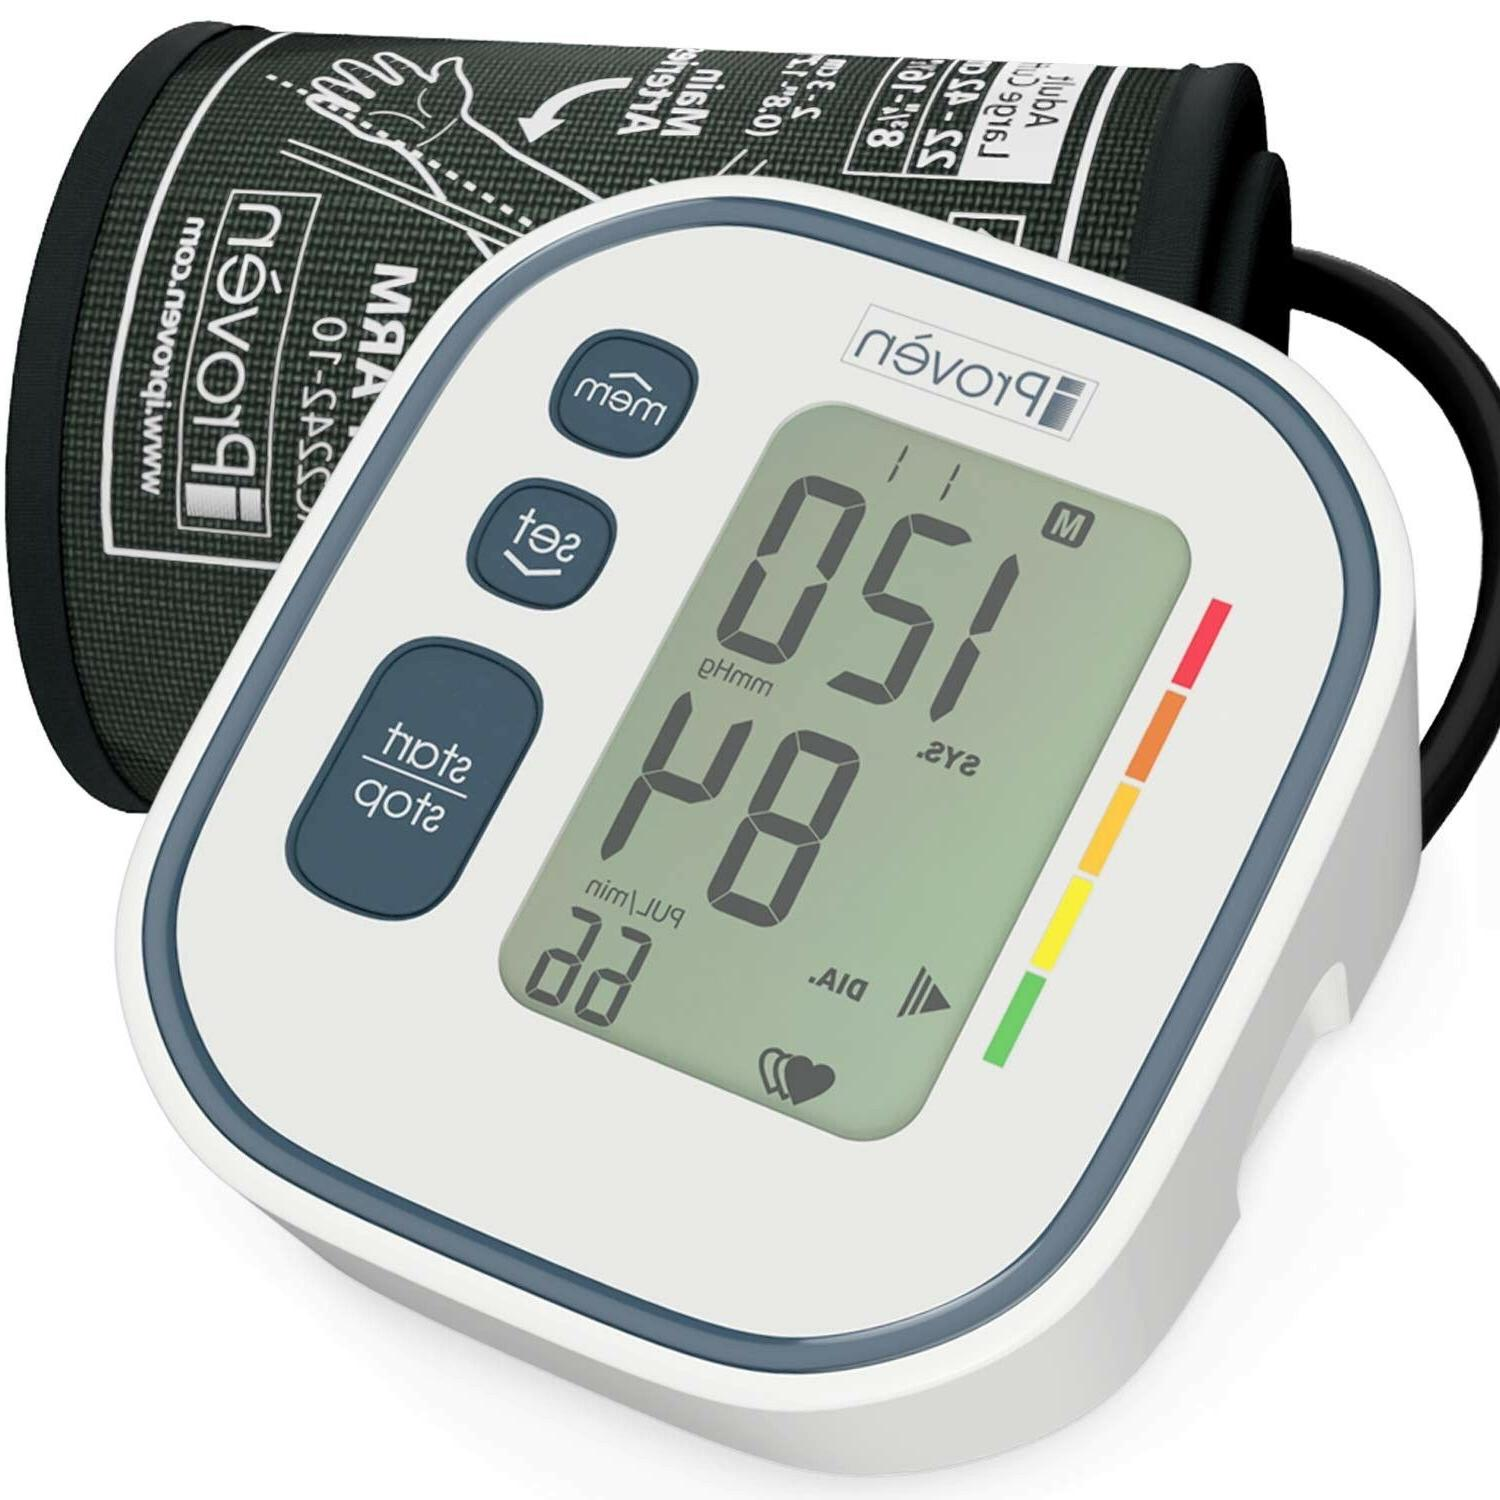 iproven blood pressure monitor for upper arm